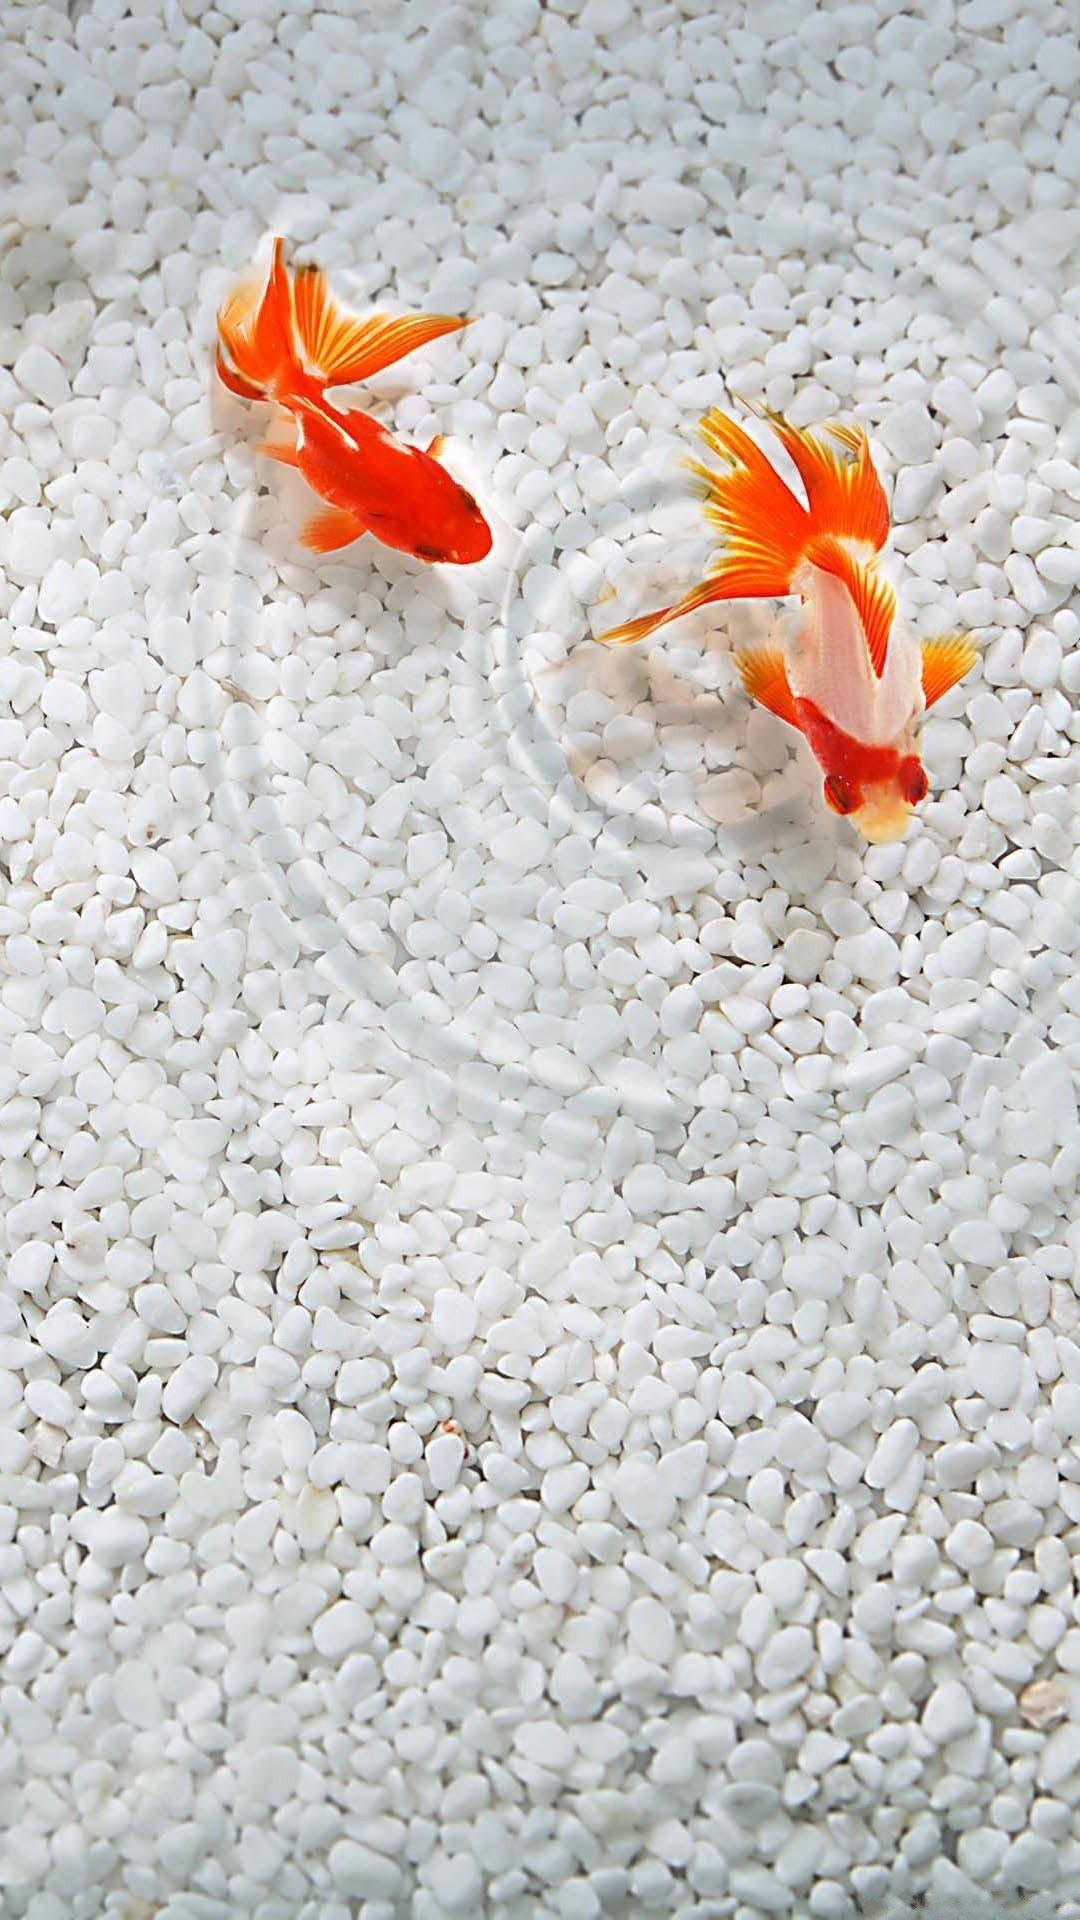 Cute Realistic Gold Fish iPhone Wallpaper. Tap to see more